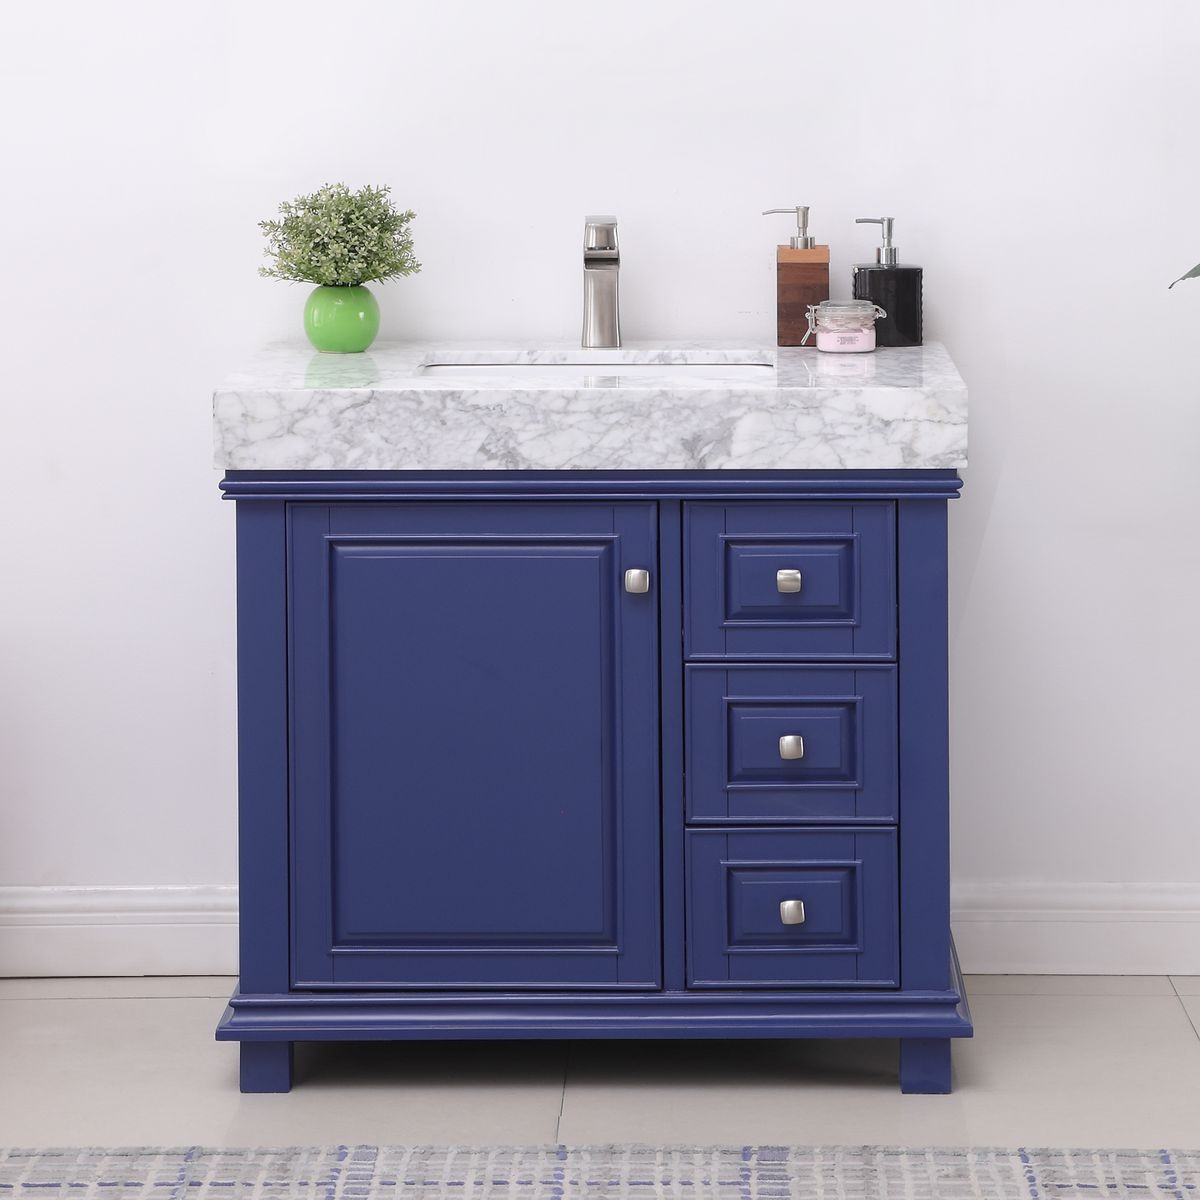 "Issac Edwards Collection 36"" Single Bathroom Vanity Set in Jewelry Blue and Carrara White Marble Countertop without Mirror"